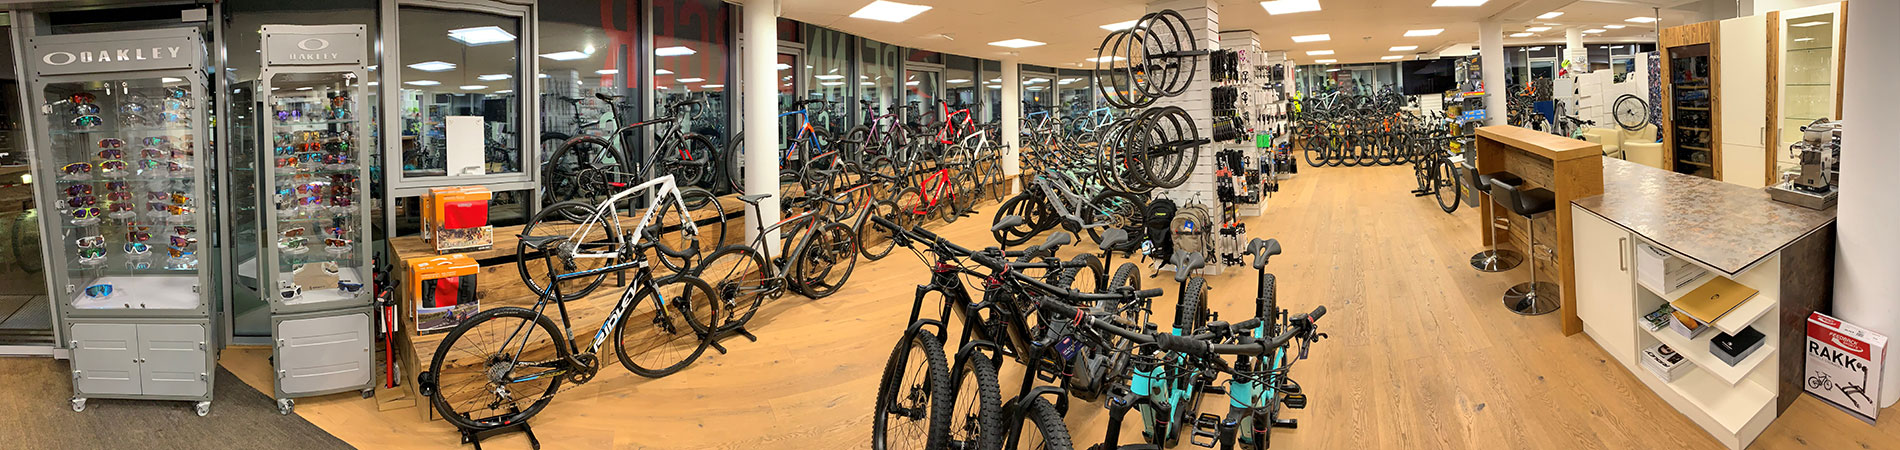 Pfannberger Cycling Radshop Panorama